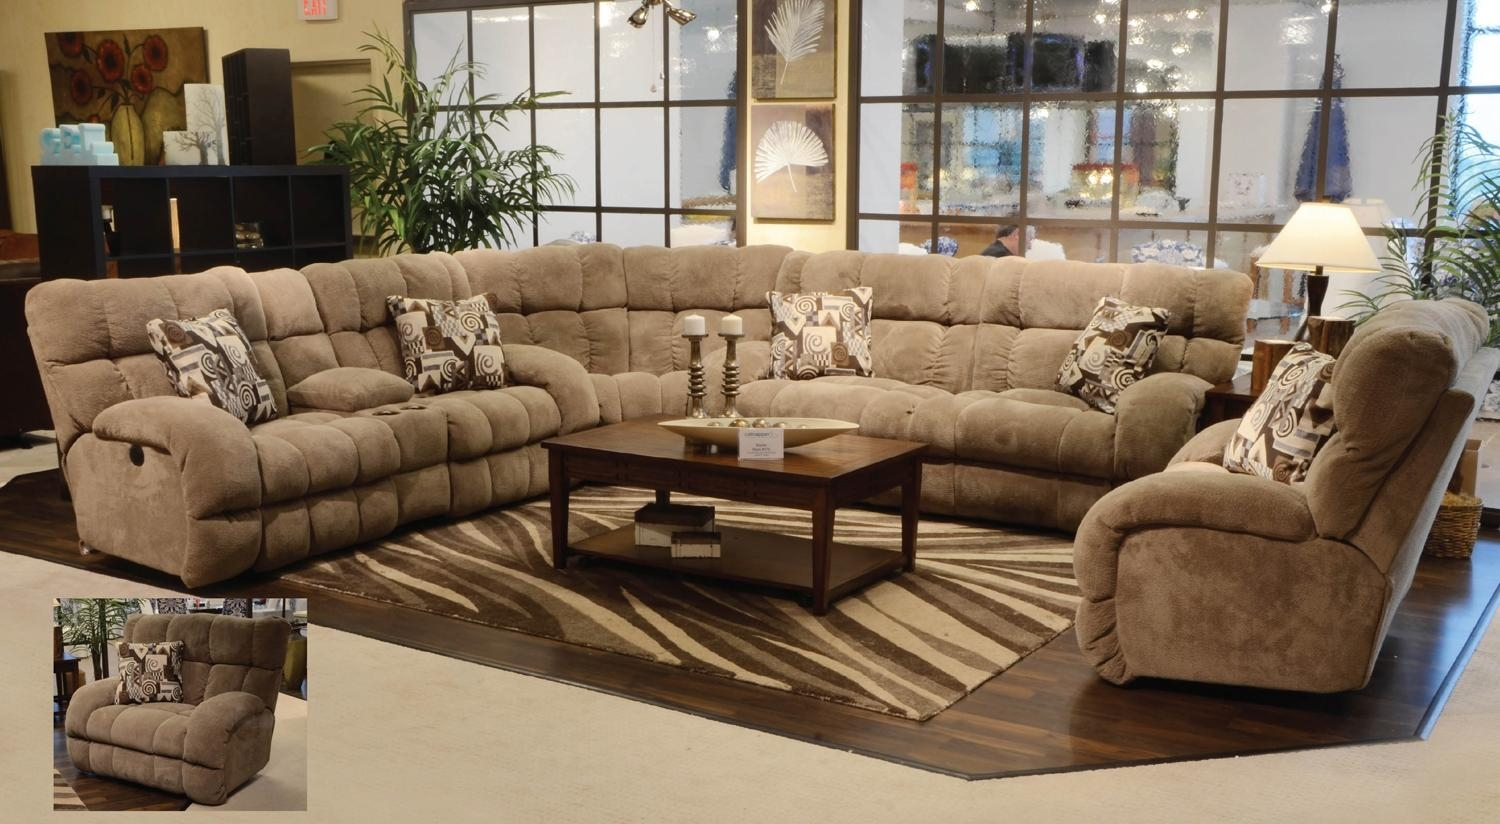 Sectional Couch Large Ottoman